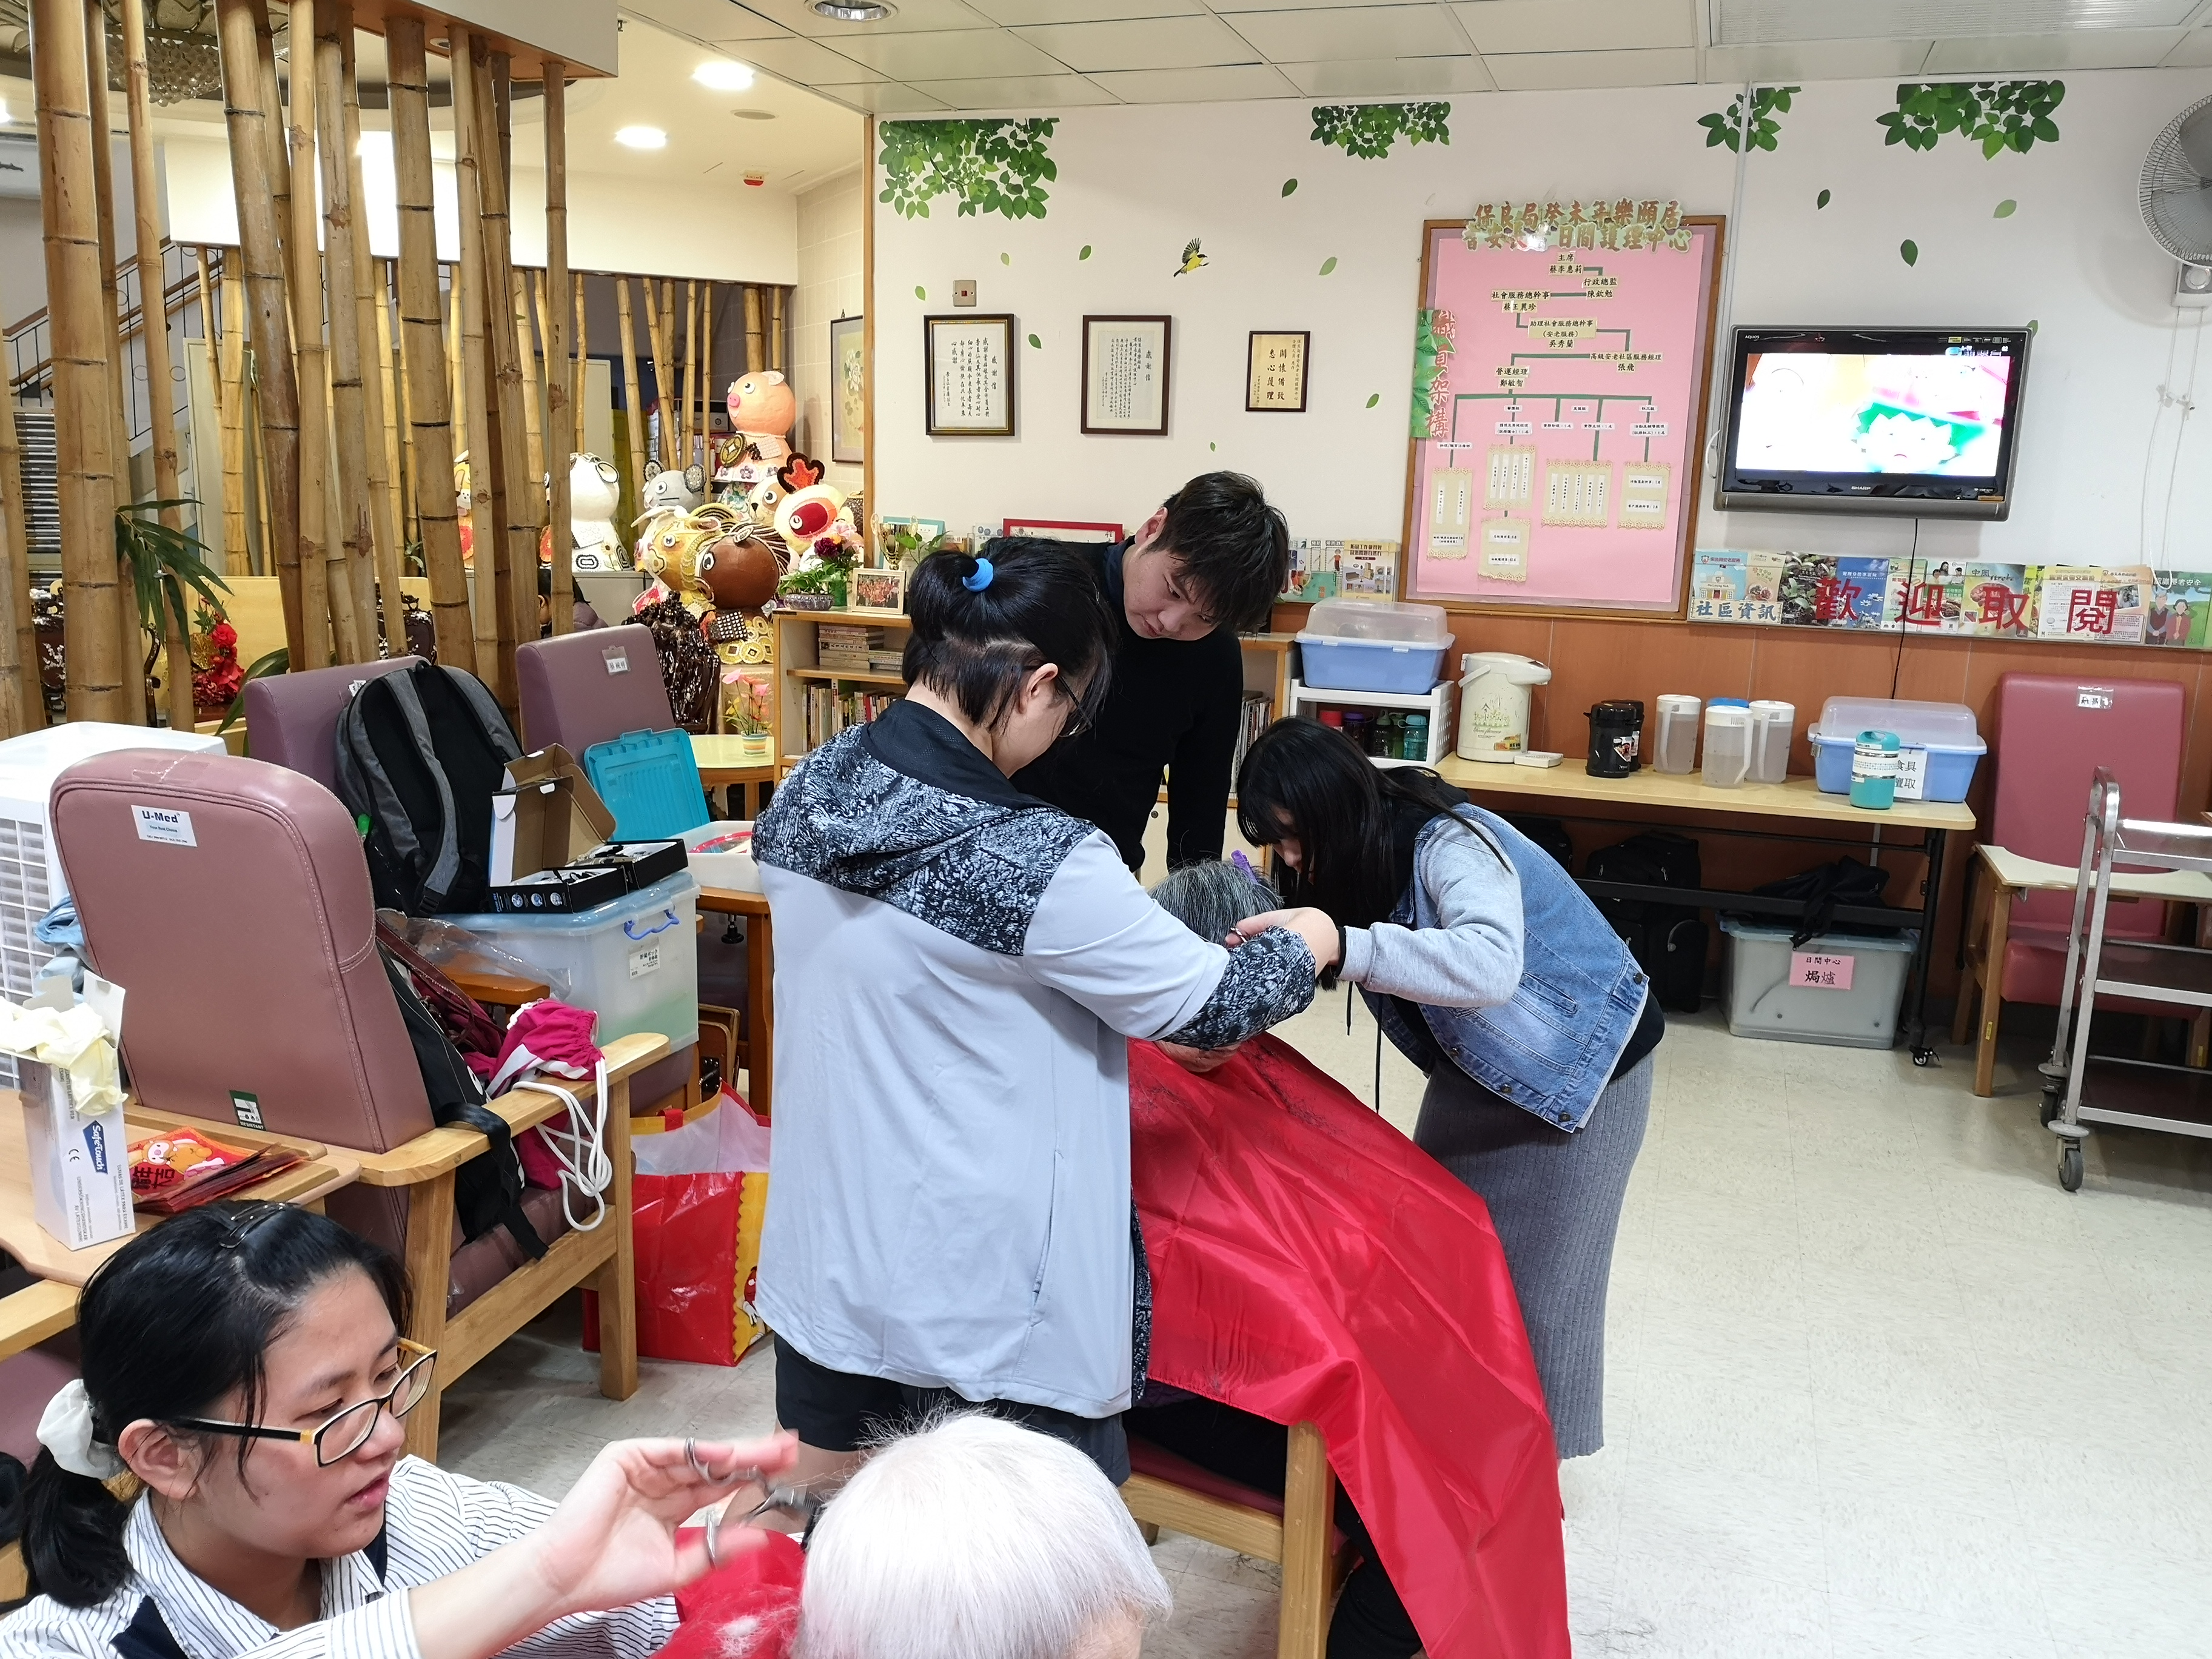 HPSHCC Community Barber Service Team's First Service - Photo - 15